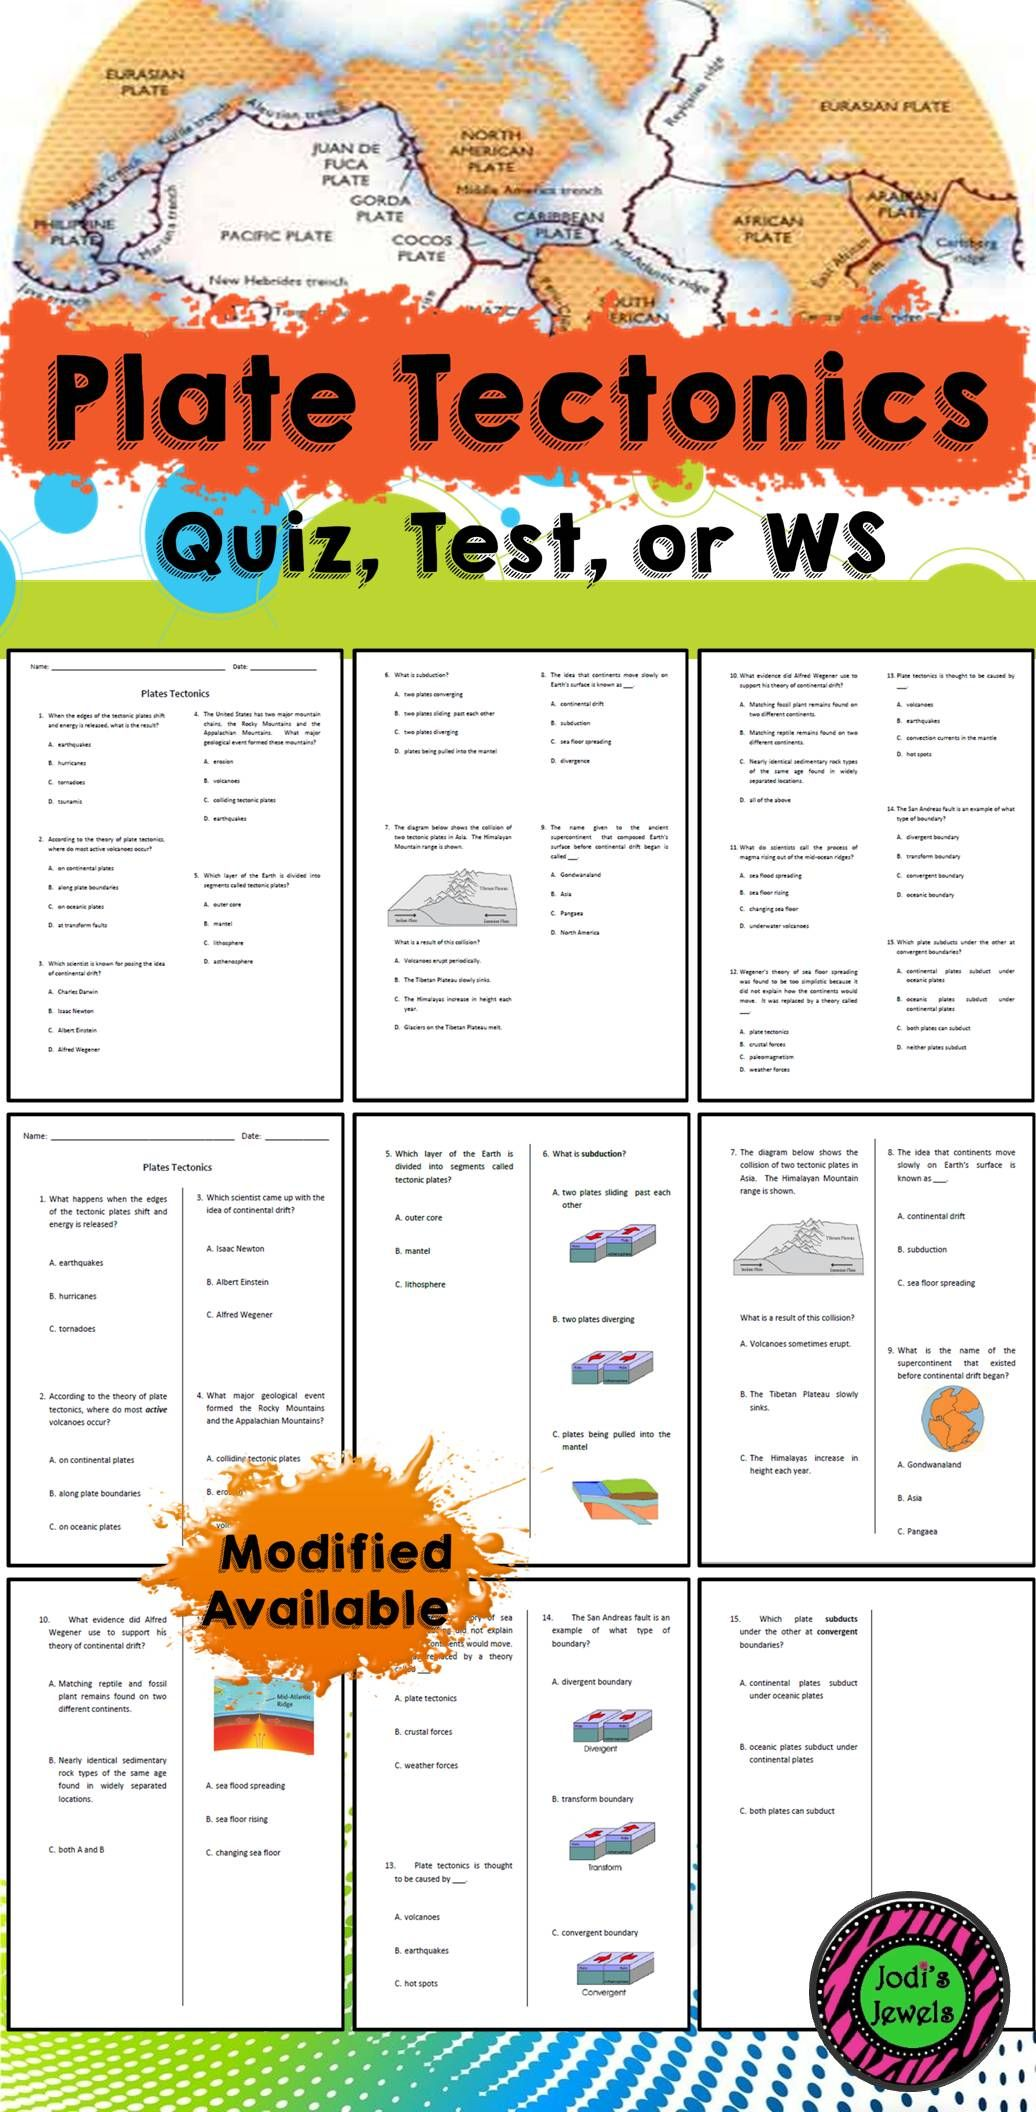 Worksheet Plate Tectonics Worksheets For Middle School